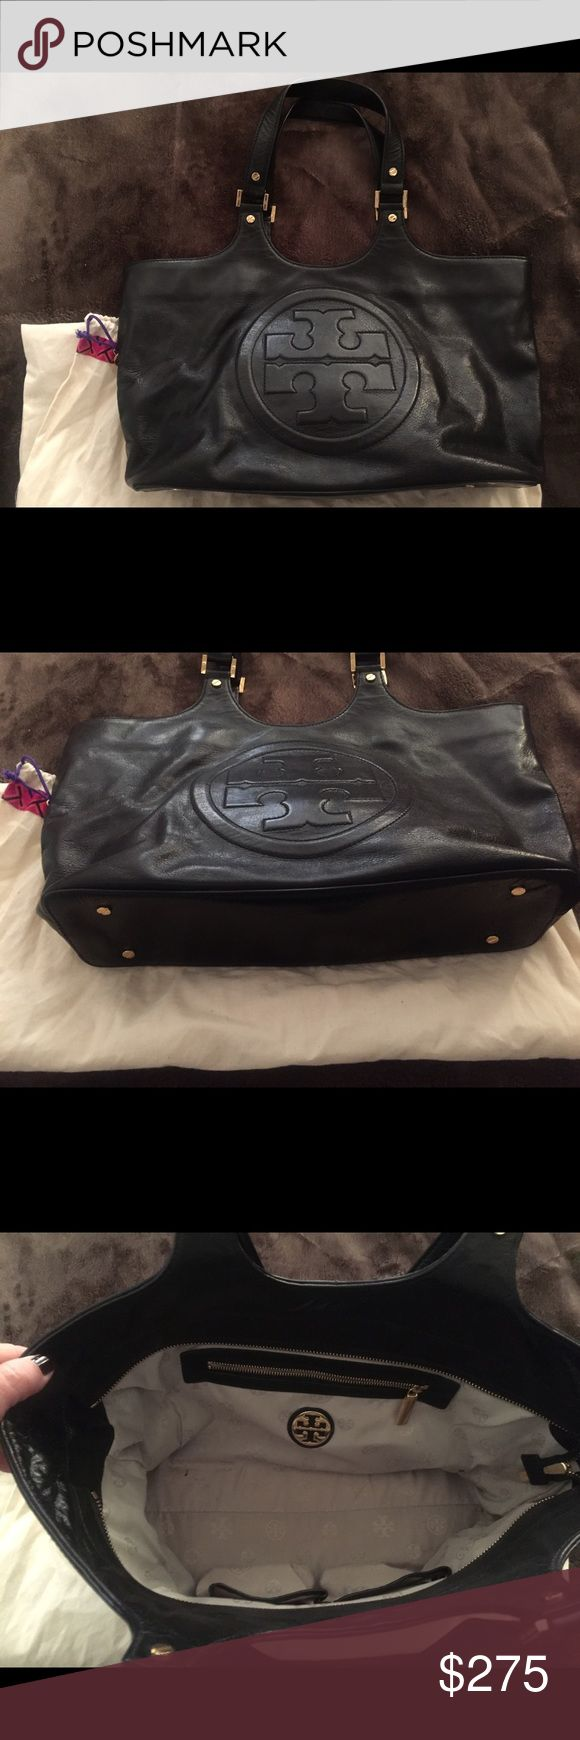 Tory burch black leather bombe bag Tory black leather bombe satchel bag. In excellent condition. Used only a few times.  Great work bag.  No scratches, stains or odors. Tory Burch Bags Satchels